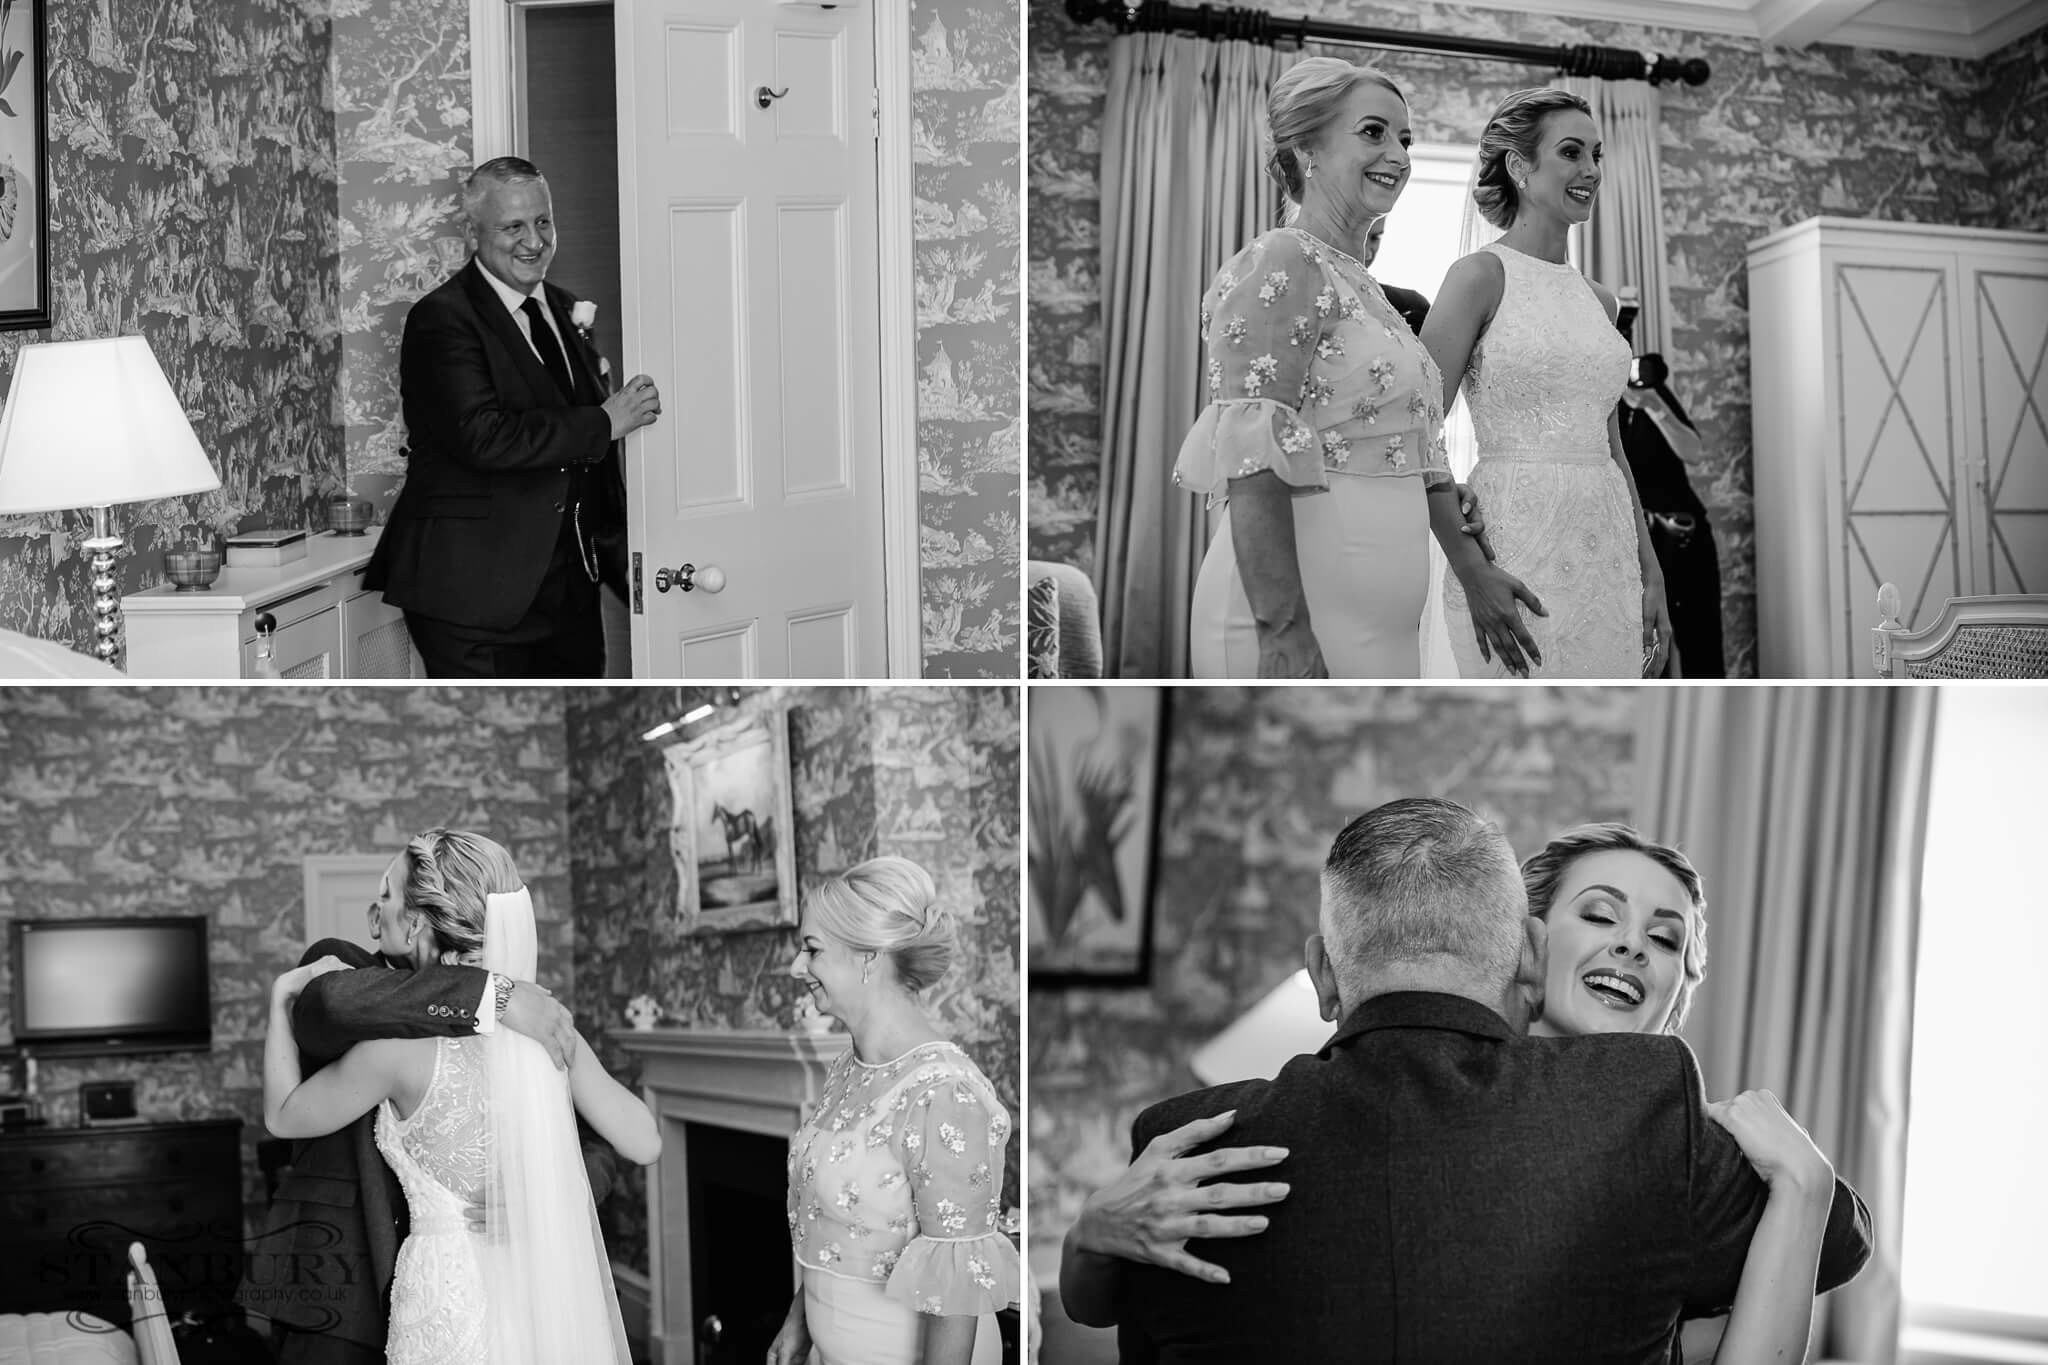 knowsley-hall-wedding-stanbury-photography-007